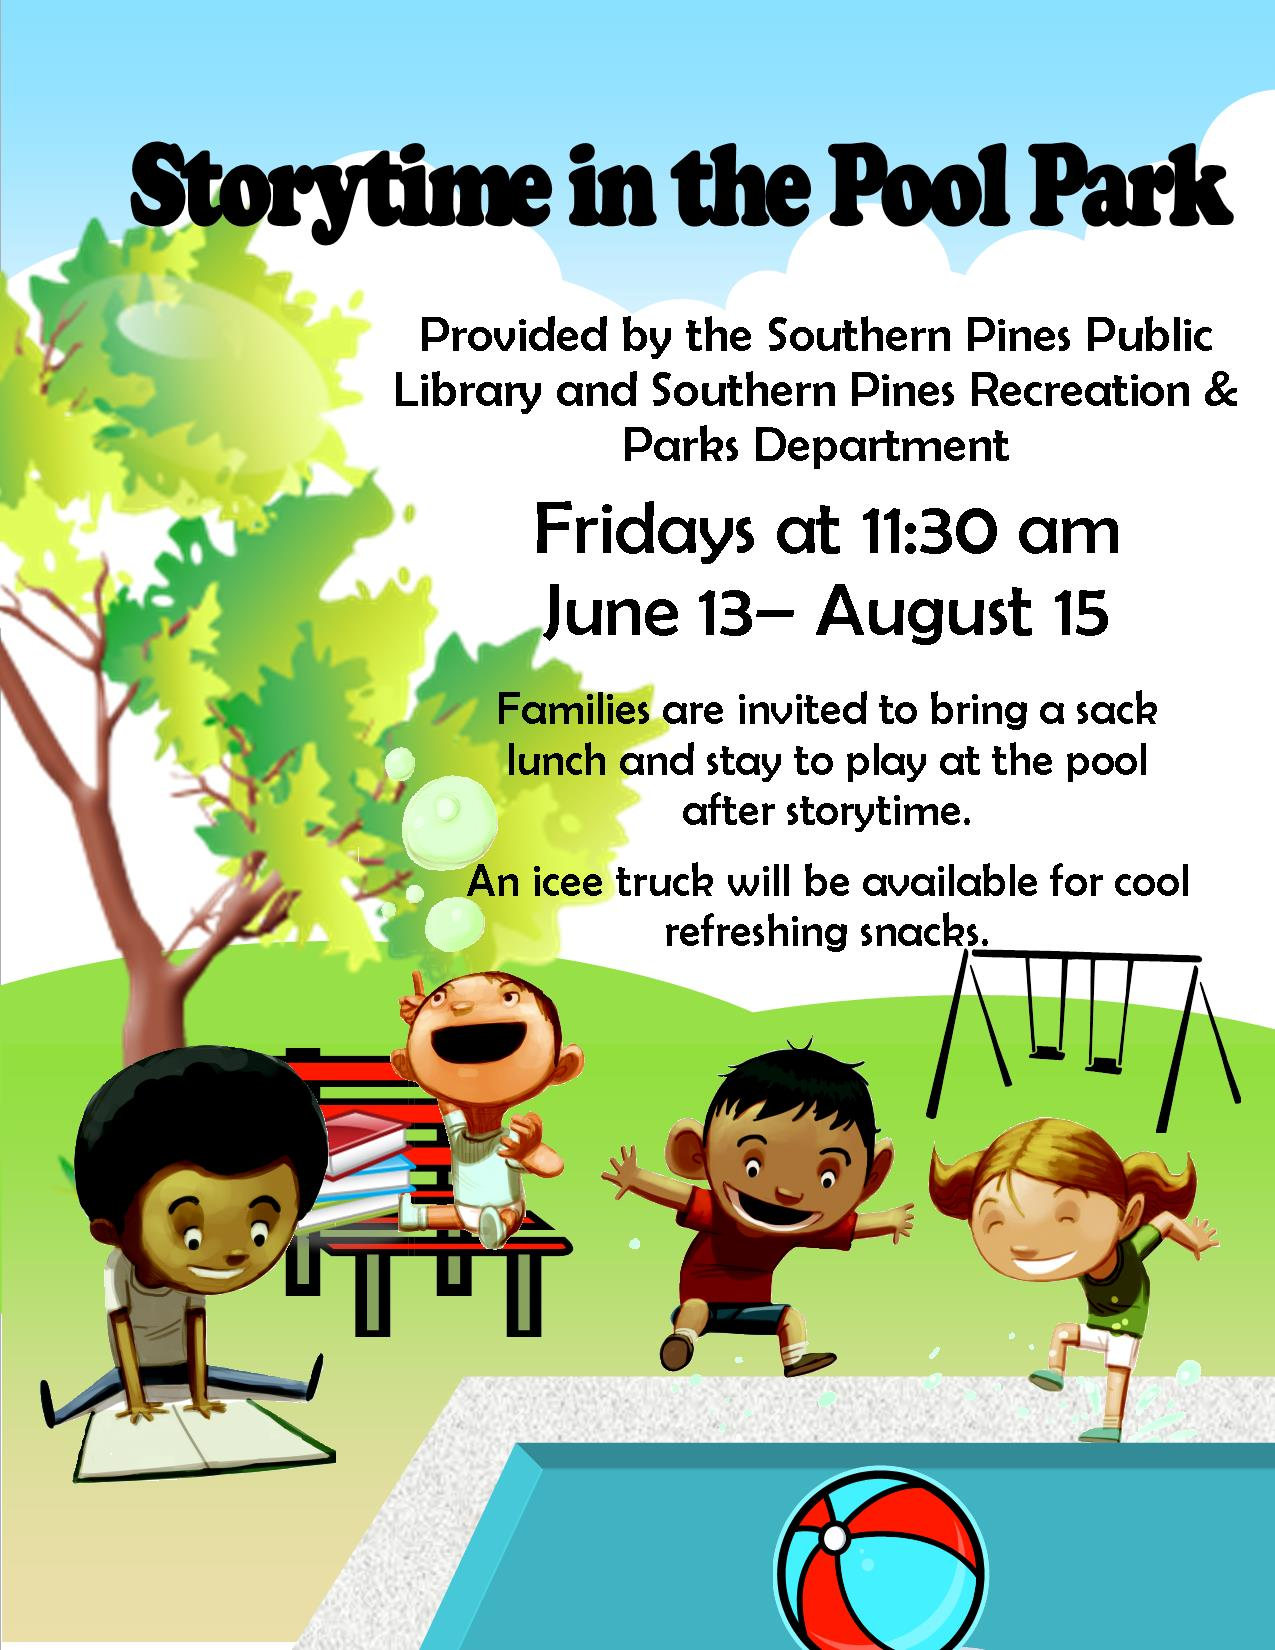 storytime in the pool park flyer.jpg